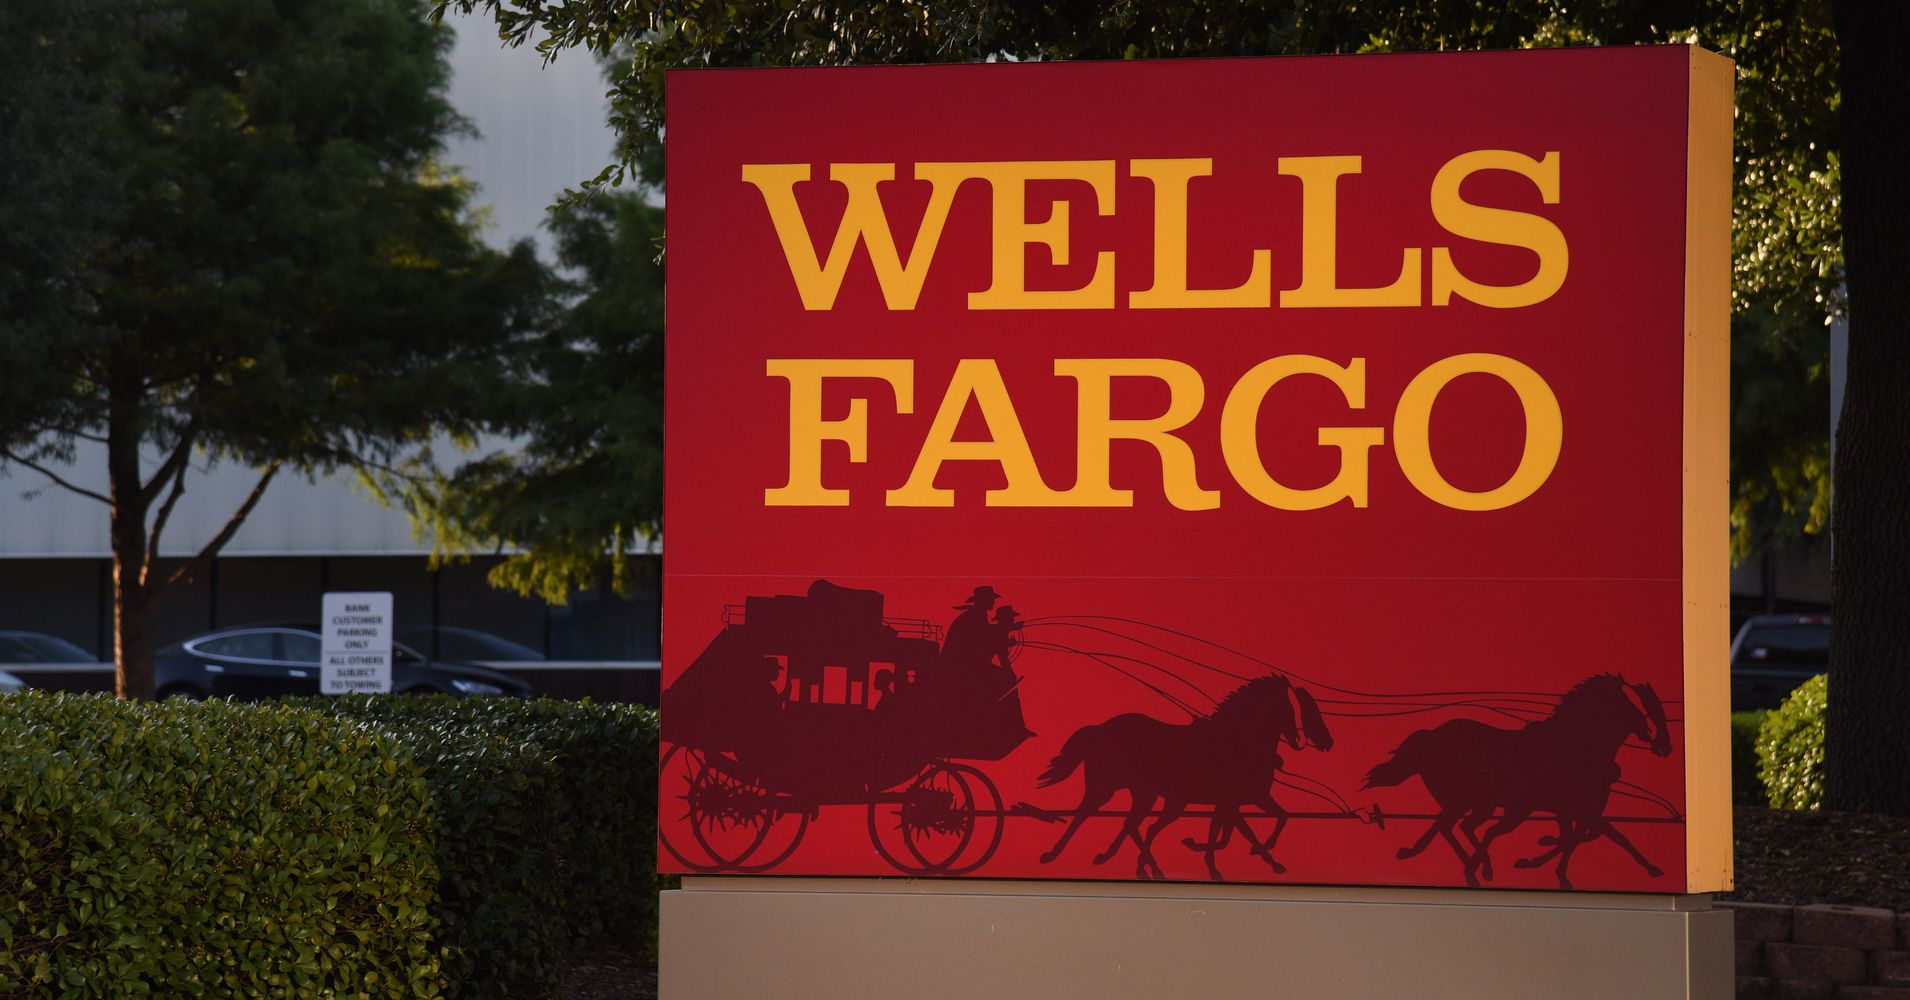 Navajo Nation Sues Wells Fargo Over 'Outrageous,' Predatory Practices